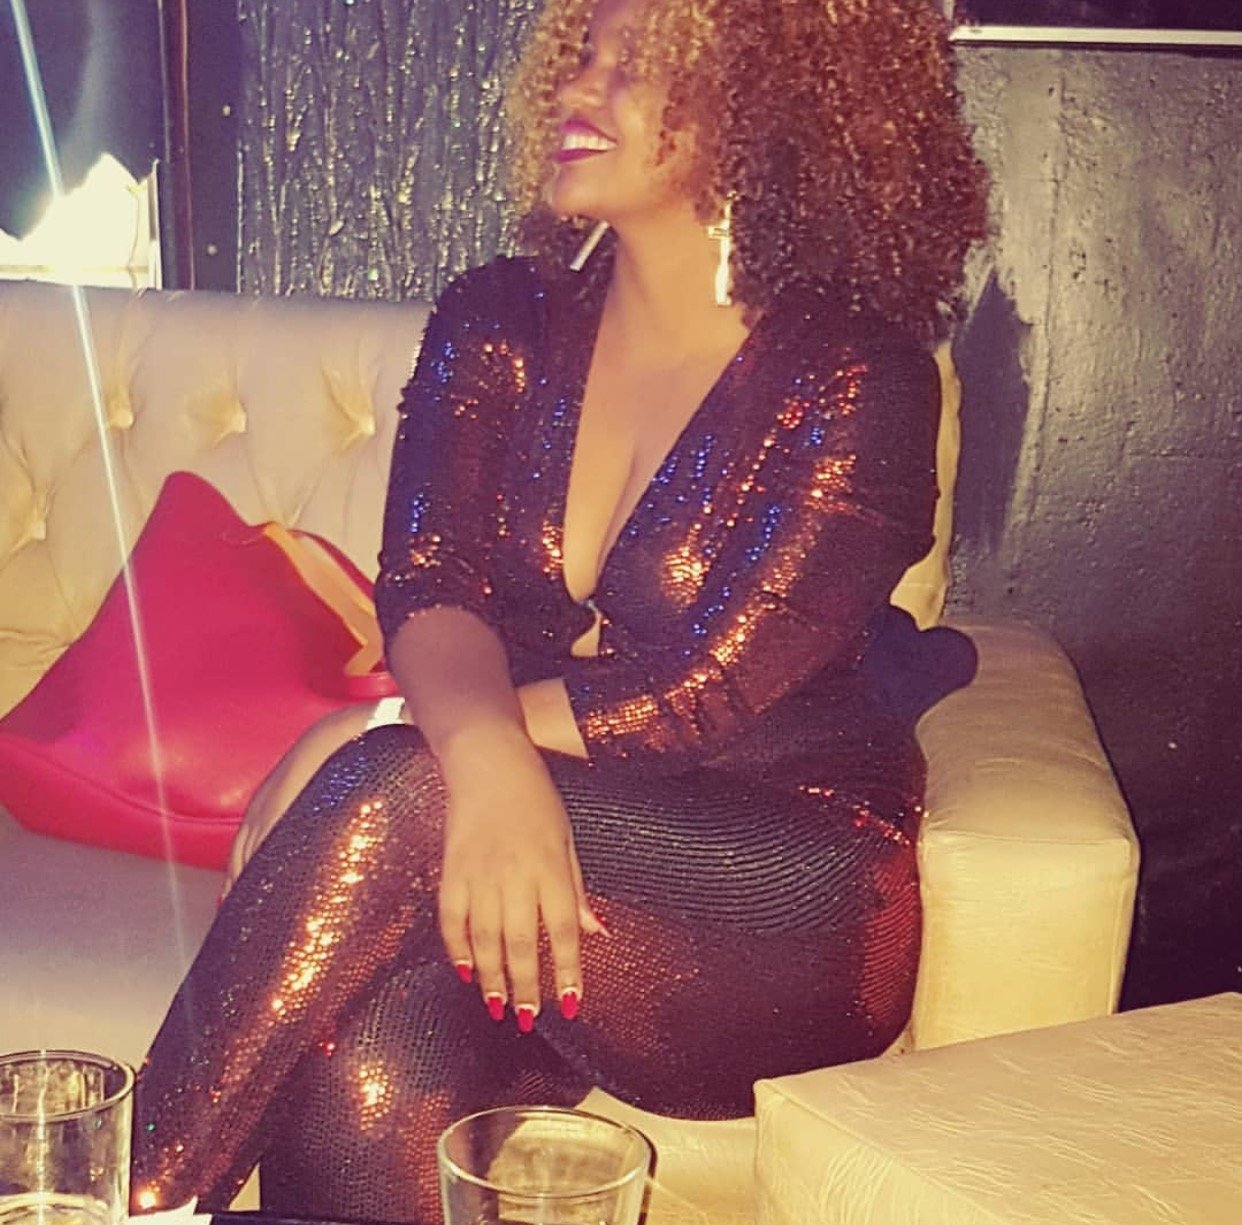 Thirst trap! Pierra Makena gives many sleepless nights after stepping out dressed like this (Photo)